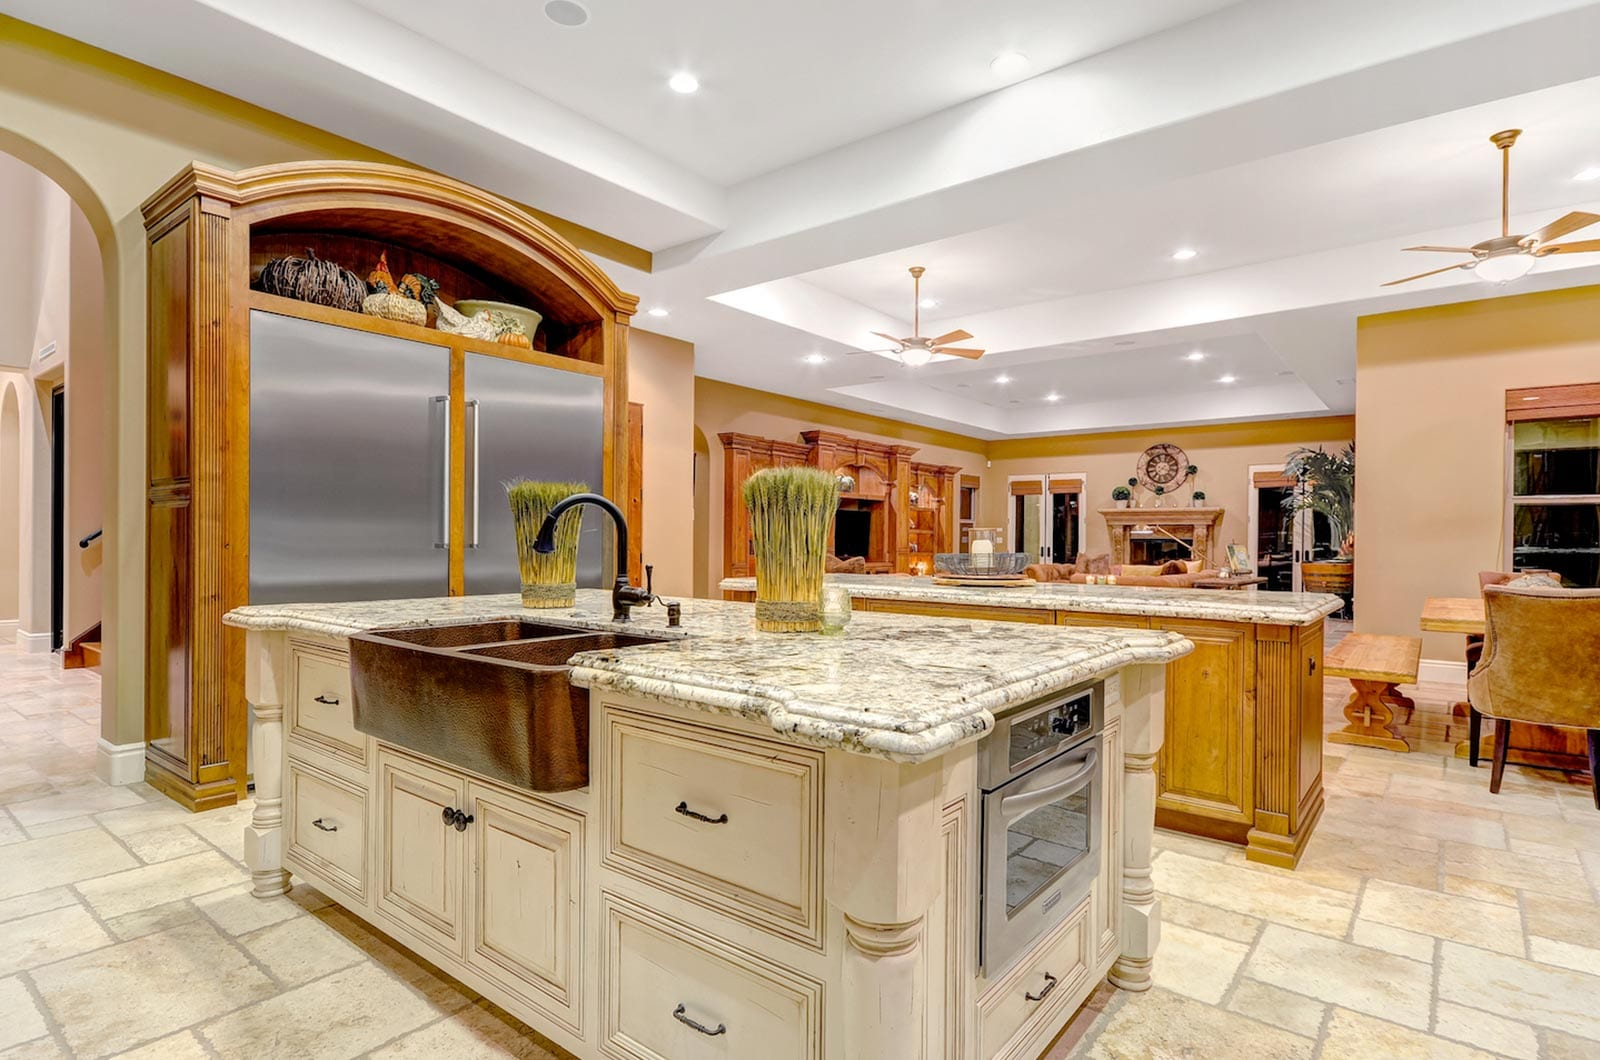 professional-real-estate-photographer-feat-image